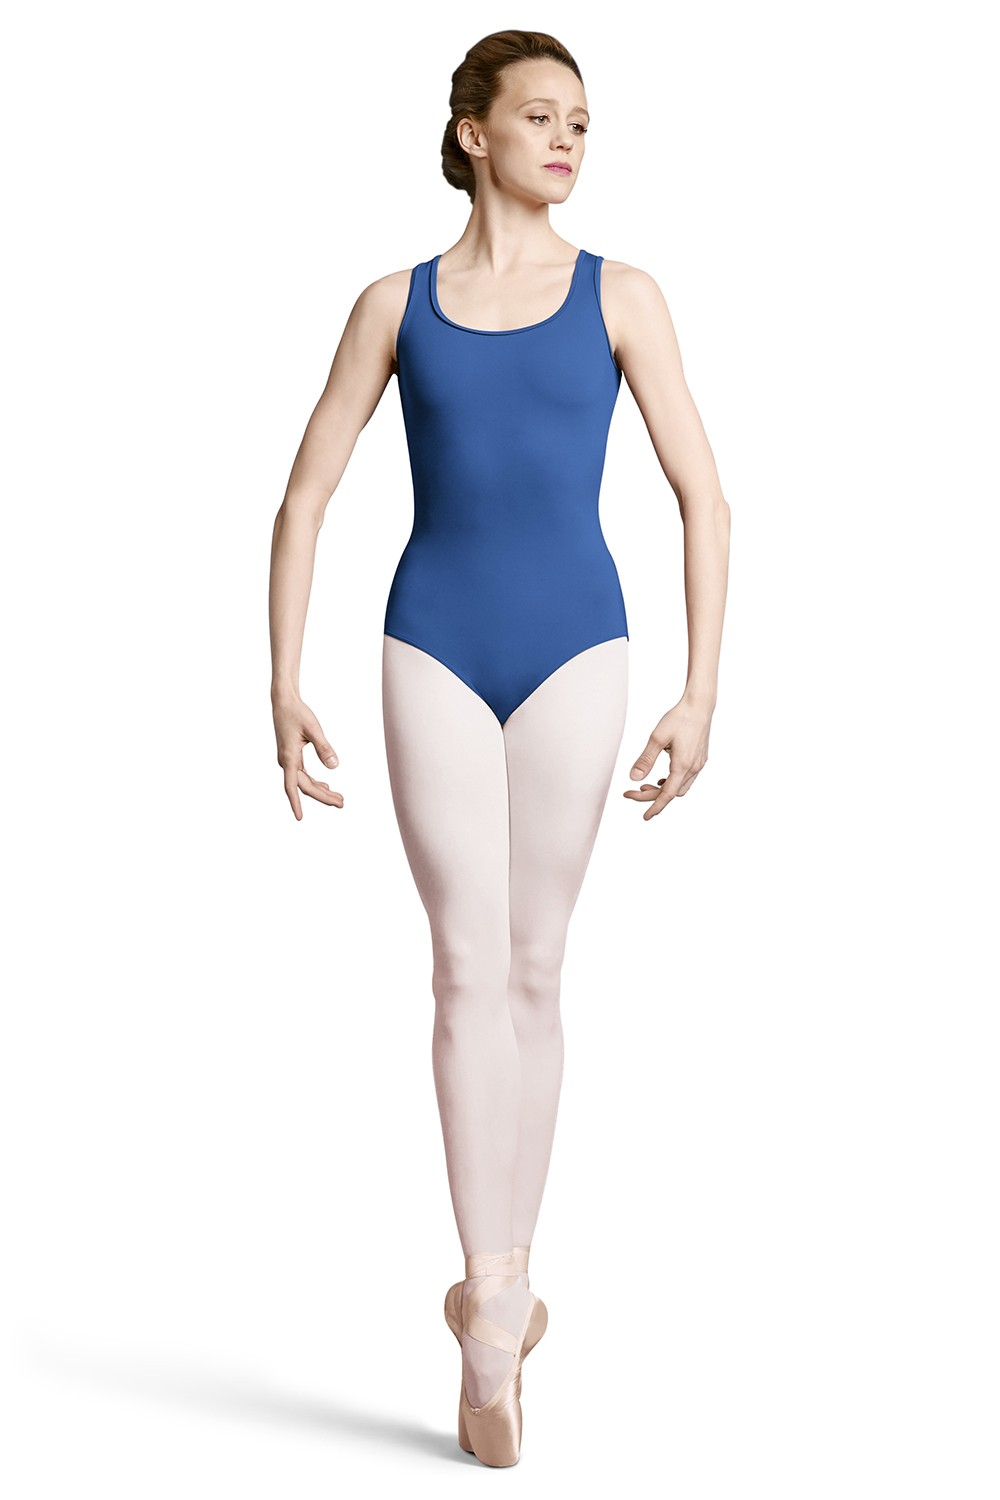 Connla Women's Dance Leotards